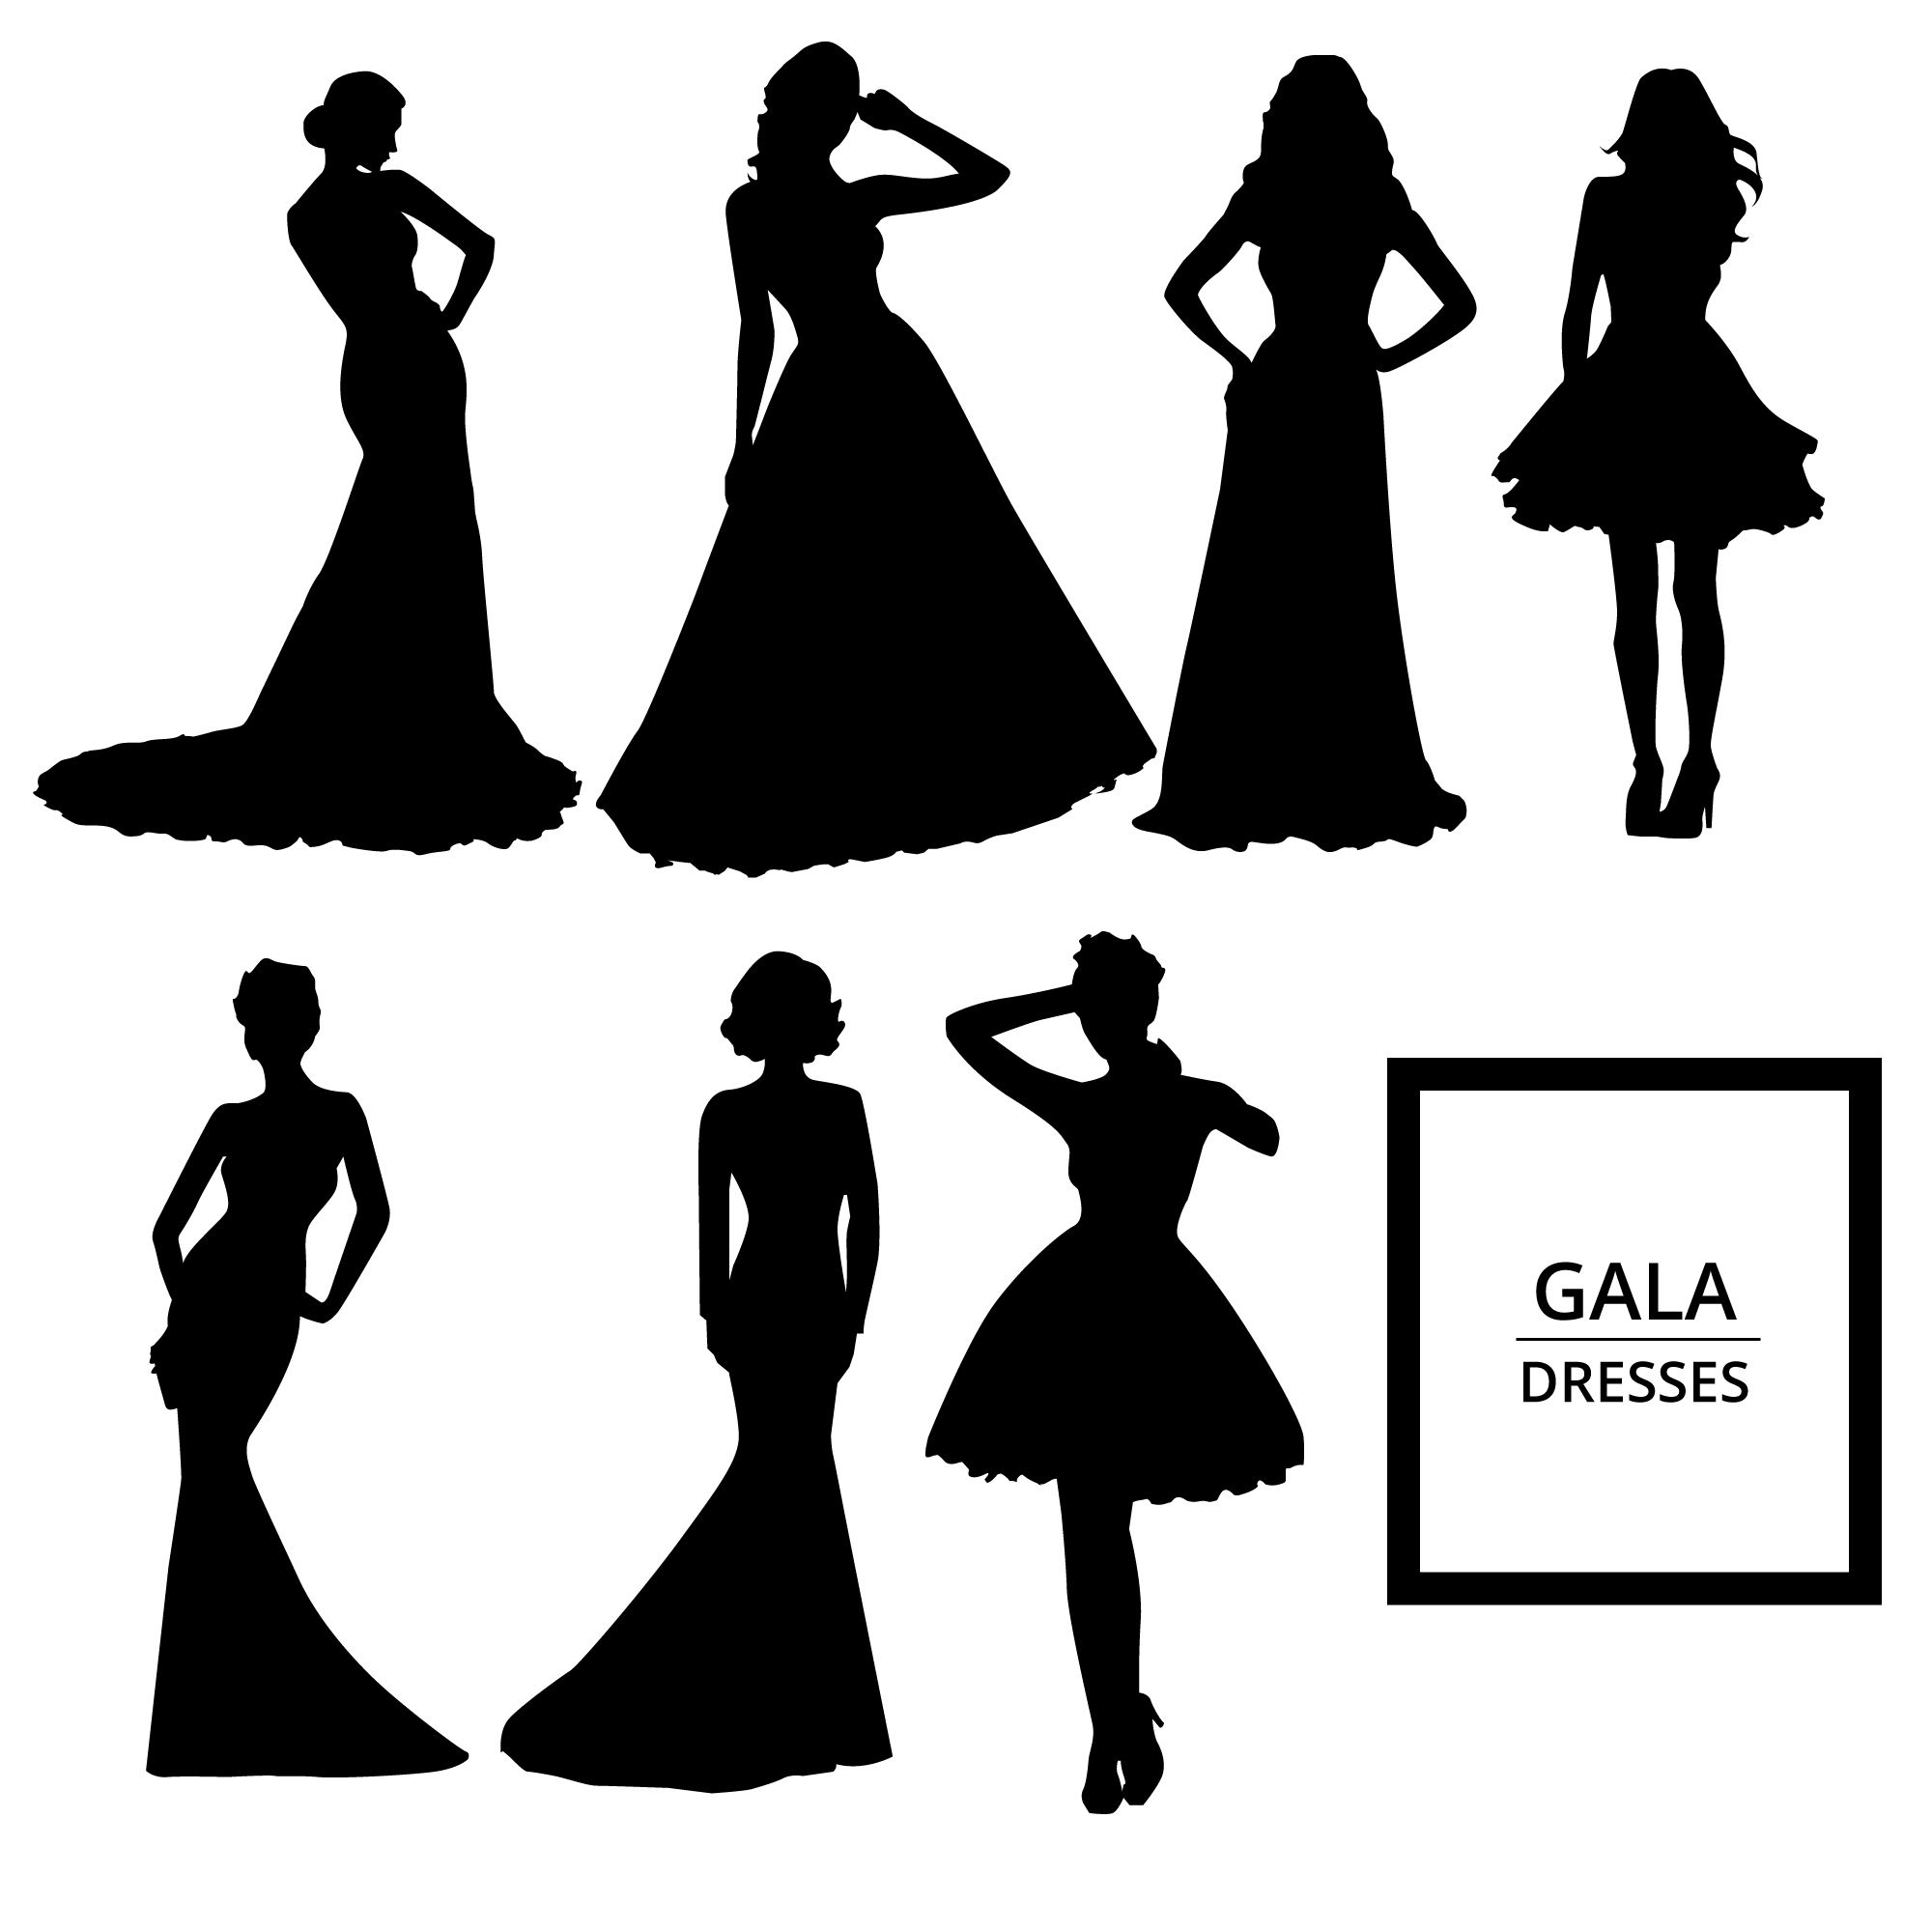 Gala dresses silhouettes